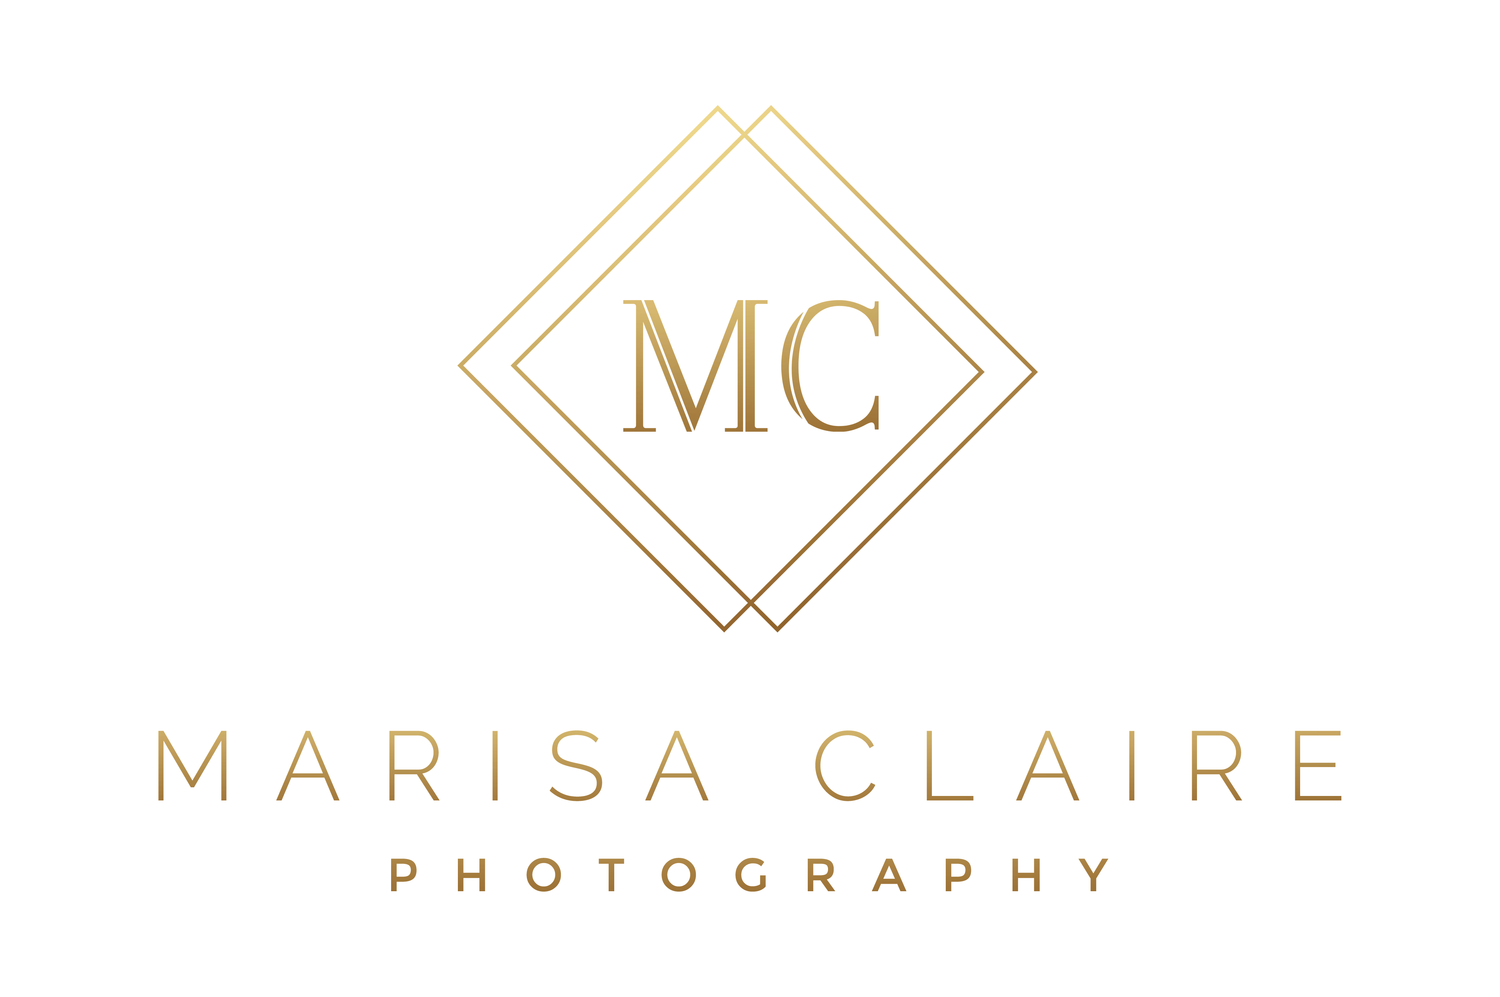 Marisa Claire Photography